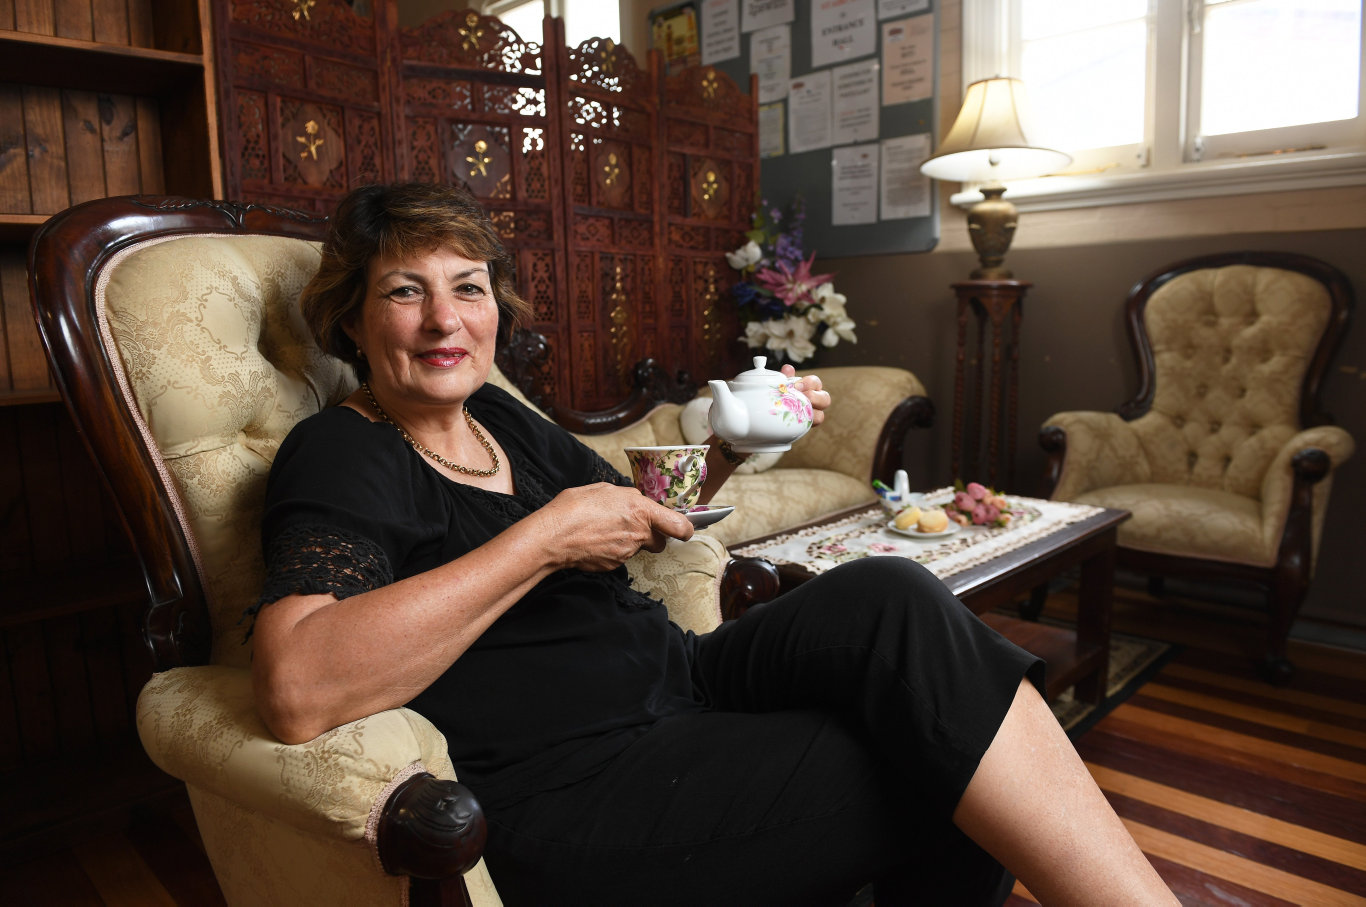 Ailsa Andersen has opened Heritage Coffee Corner in the Ipswich Antique Centre.